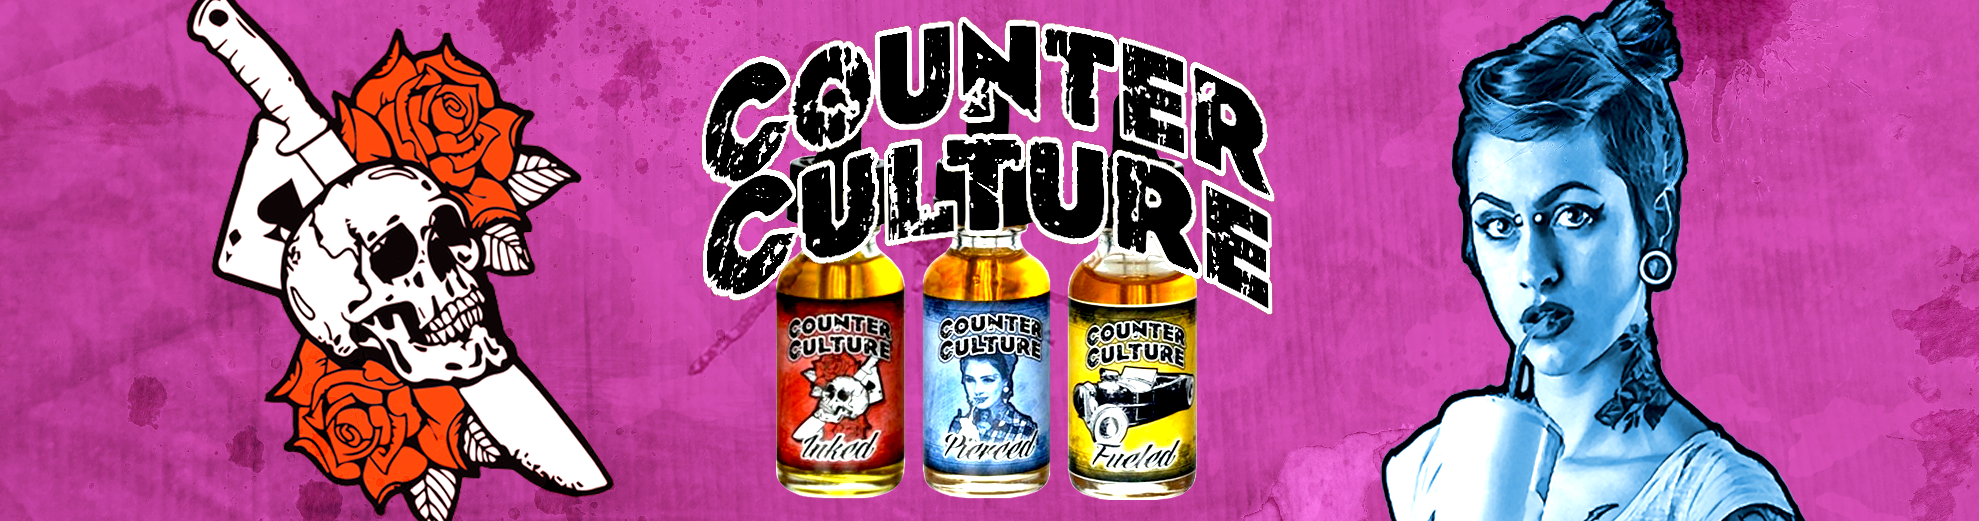 E-liquides Counter Culture : Pierced, Fueled et Inked